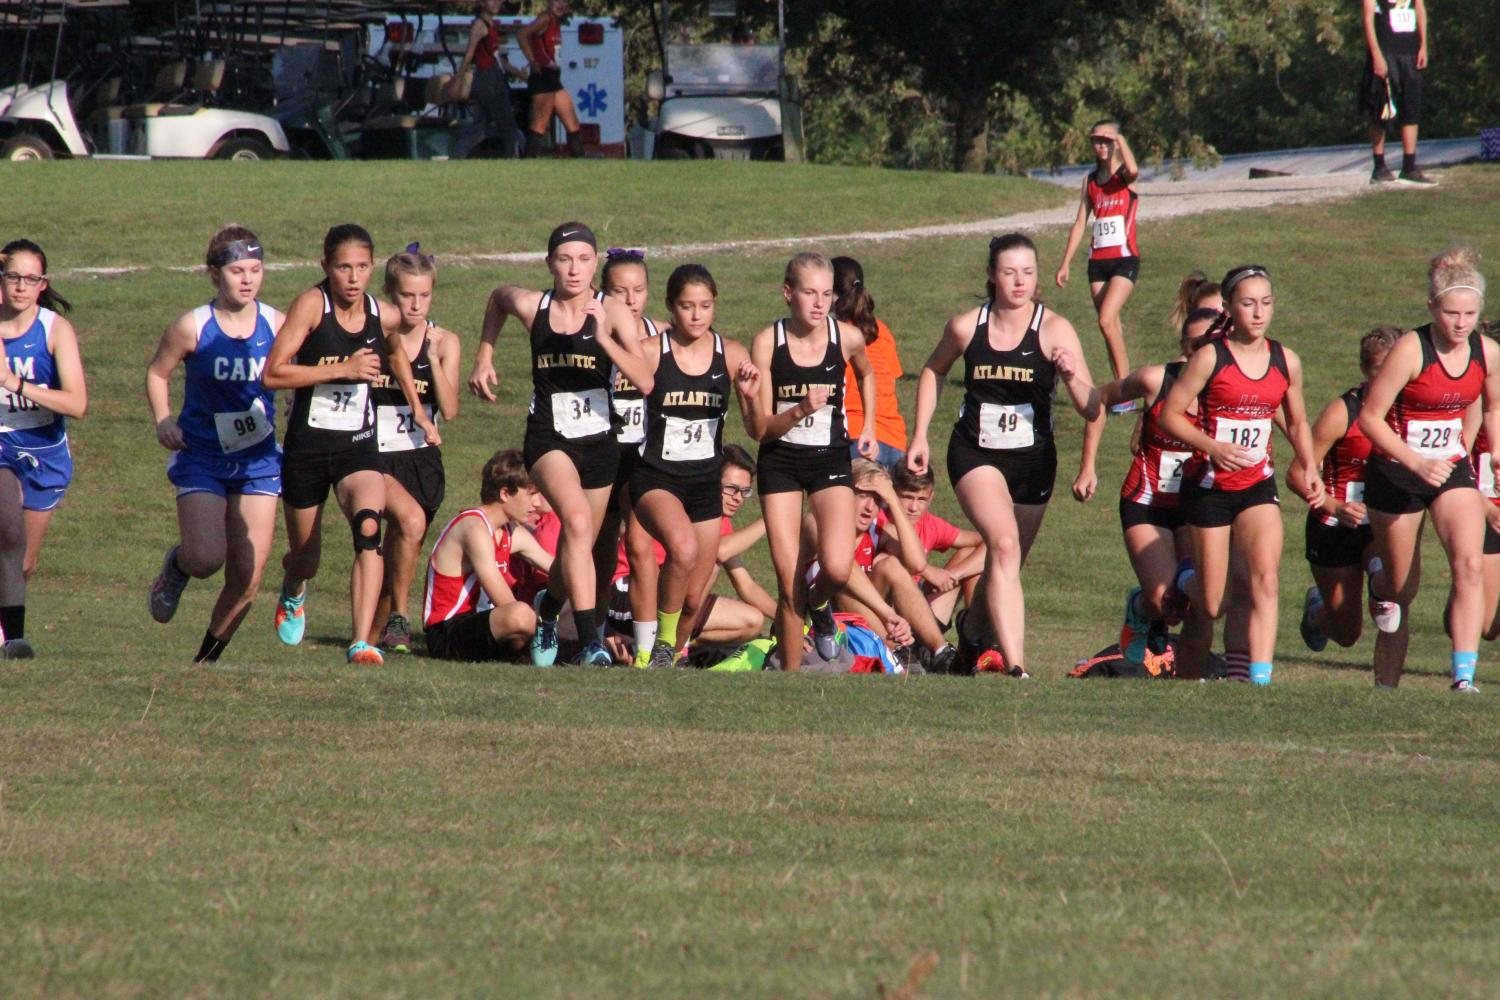 AND THEY'RE OFF- The girls varsity team takes off to begin their race.  The girls finished second on Saturday in Harlan.